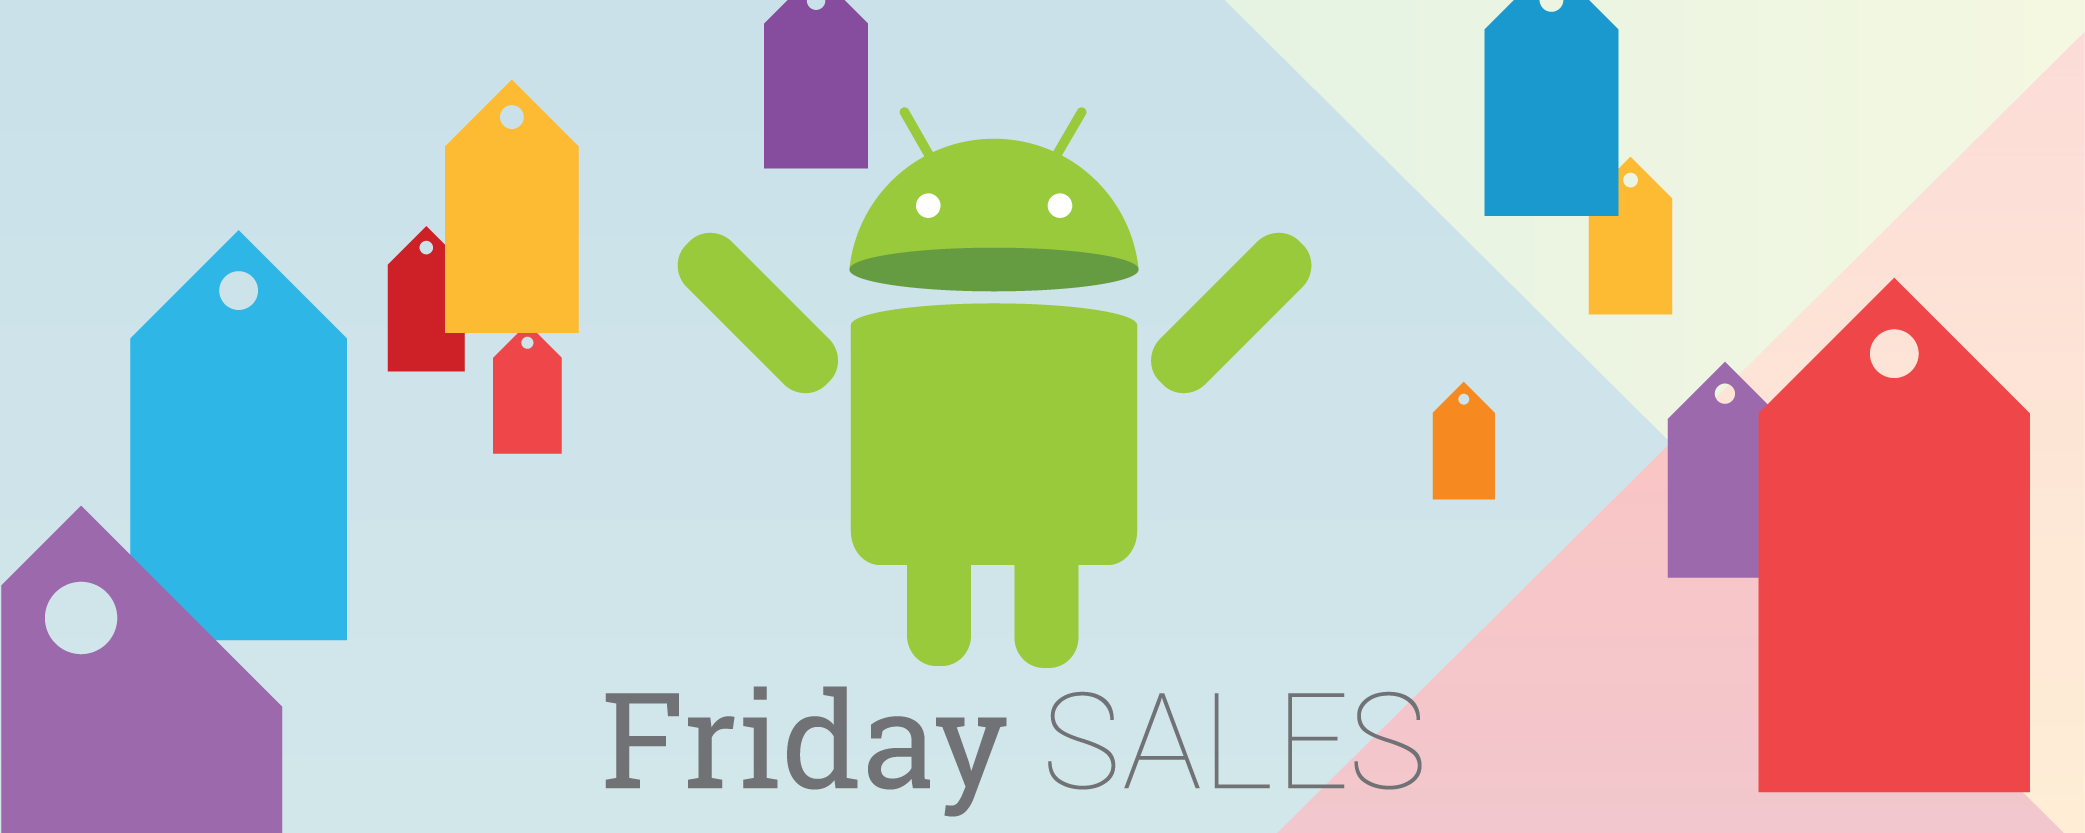 25 temporarily free and 82 on-sale apps and games for the weekend